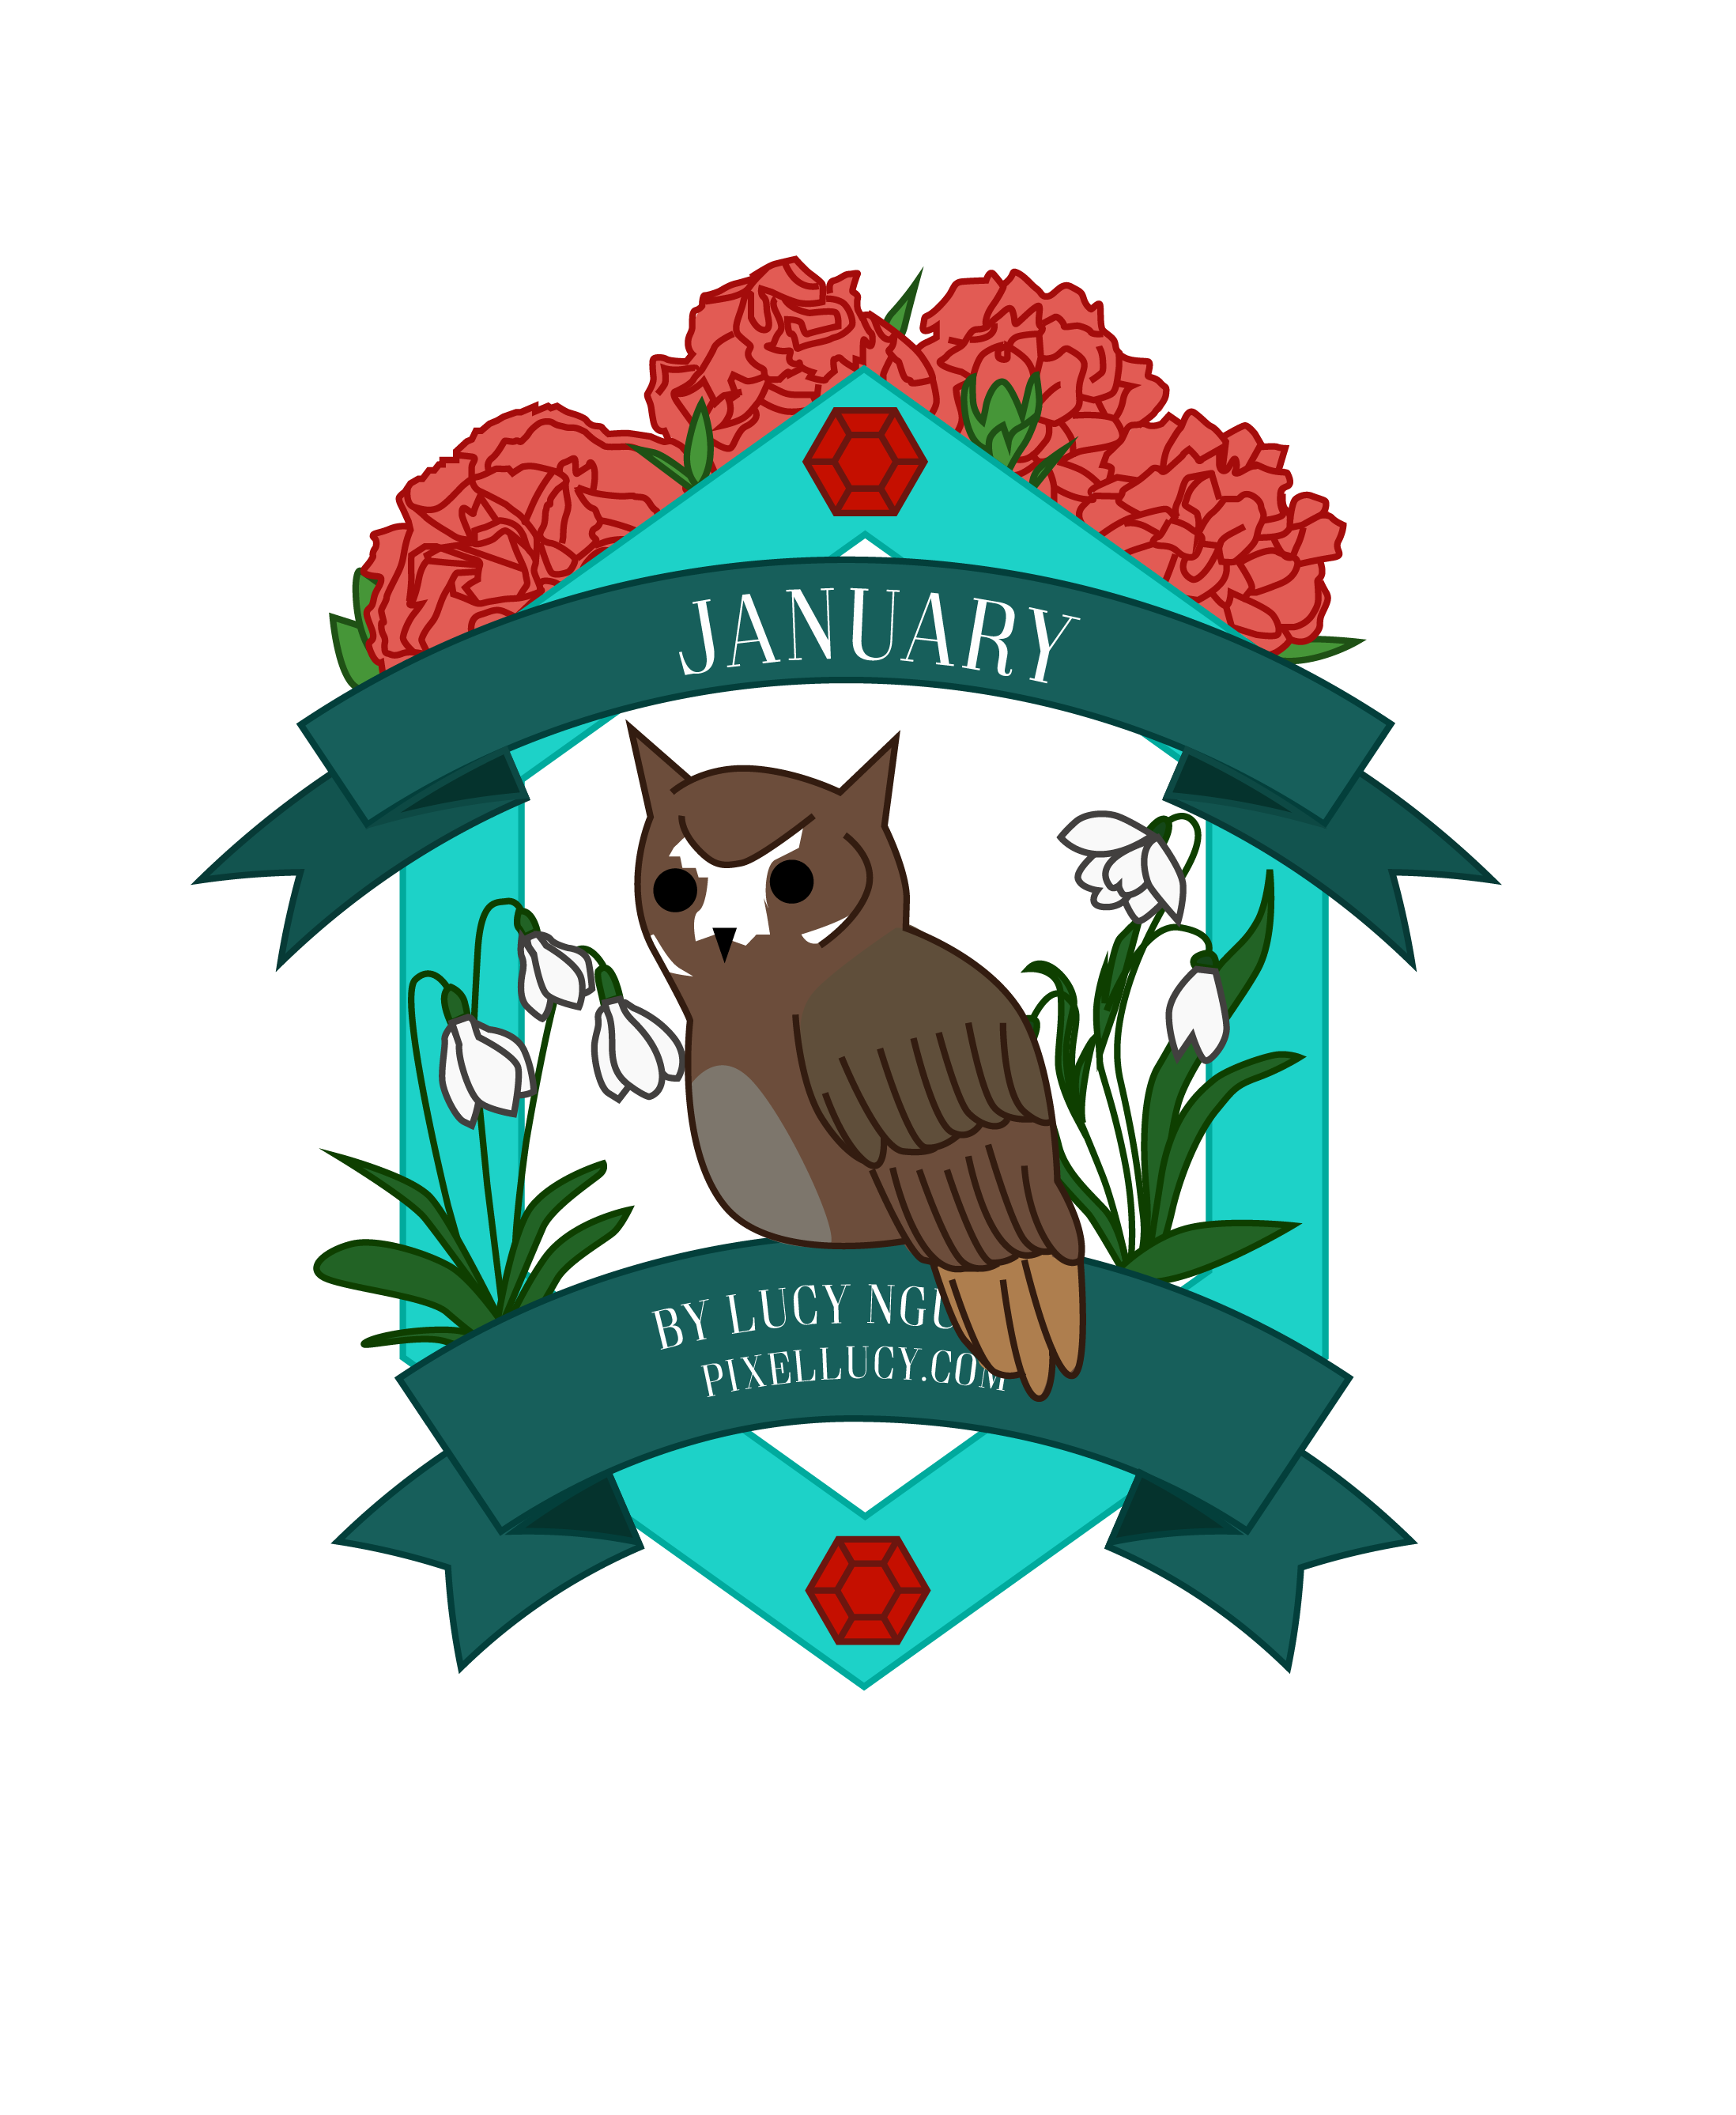 Monthly Challenge: January